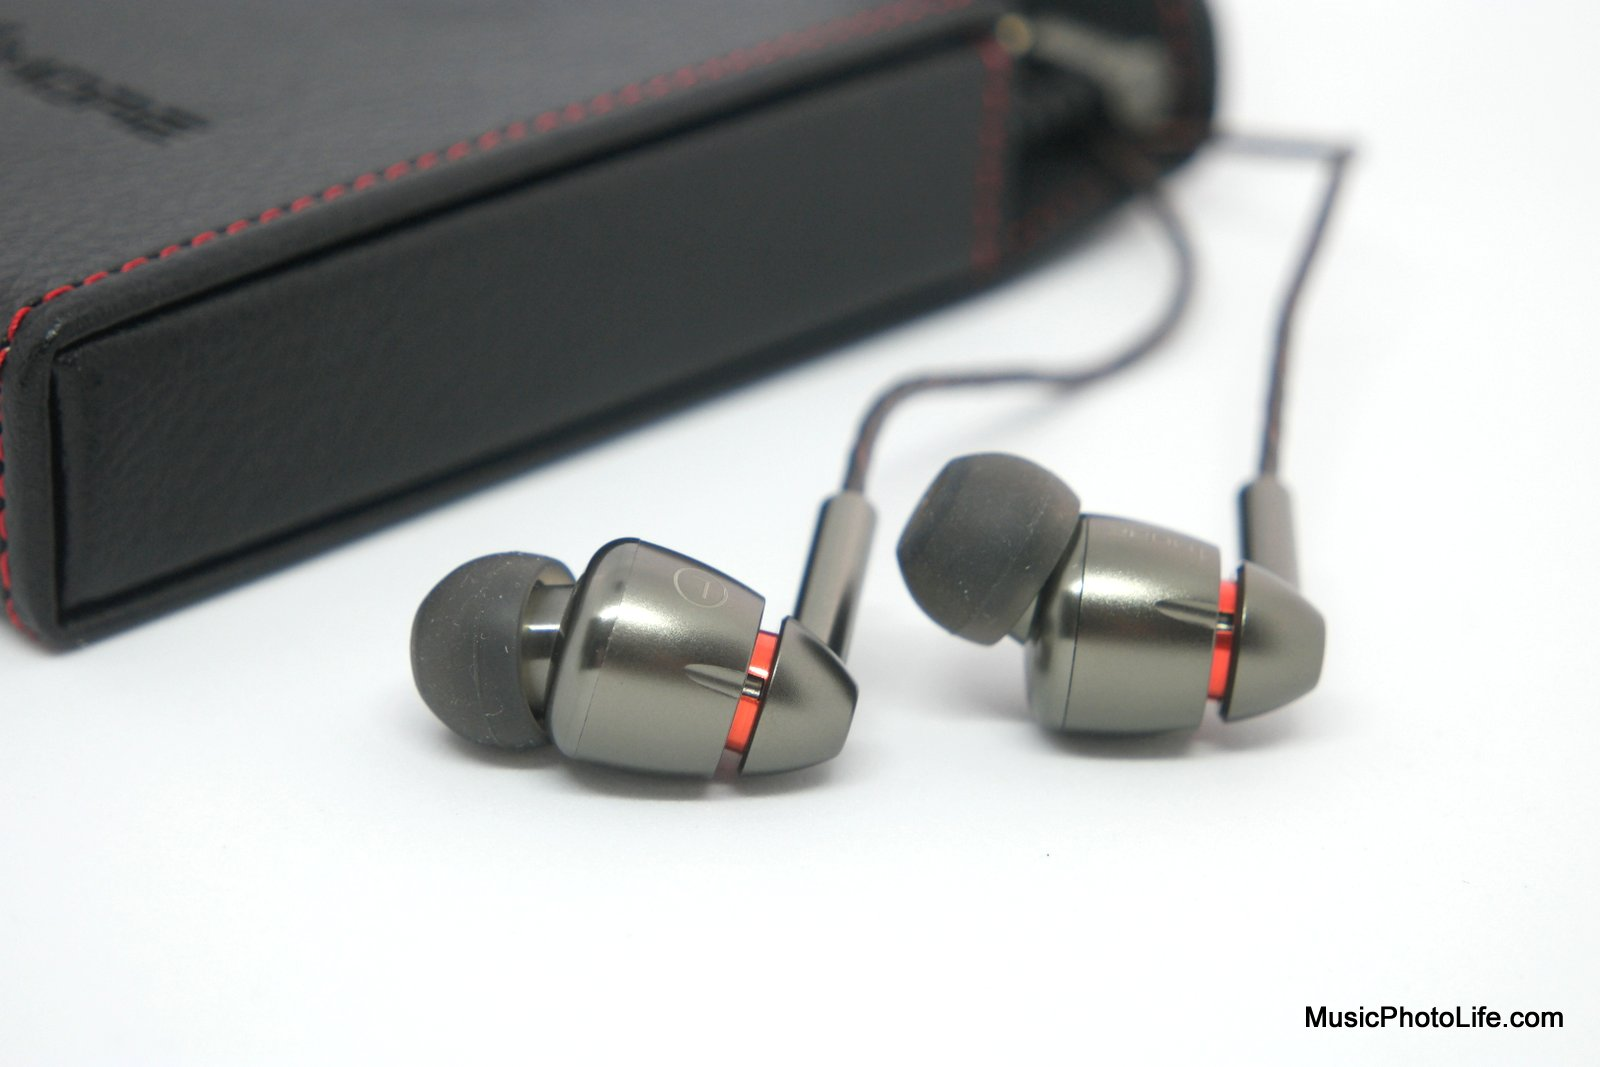 1MORE Quad Driver In-Ear Headphones review by Chester Tan musicphotolife.com